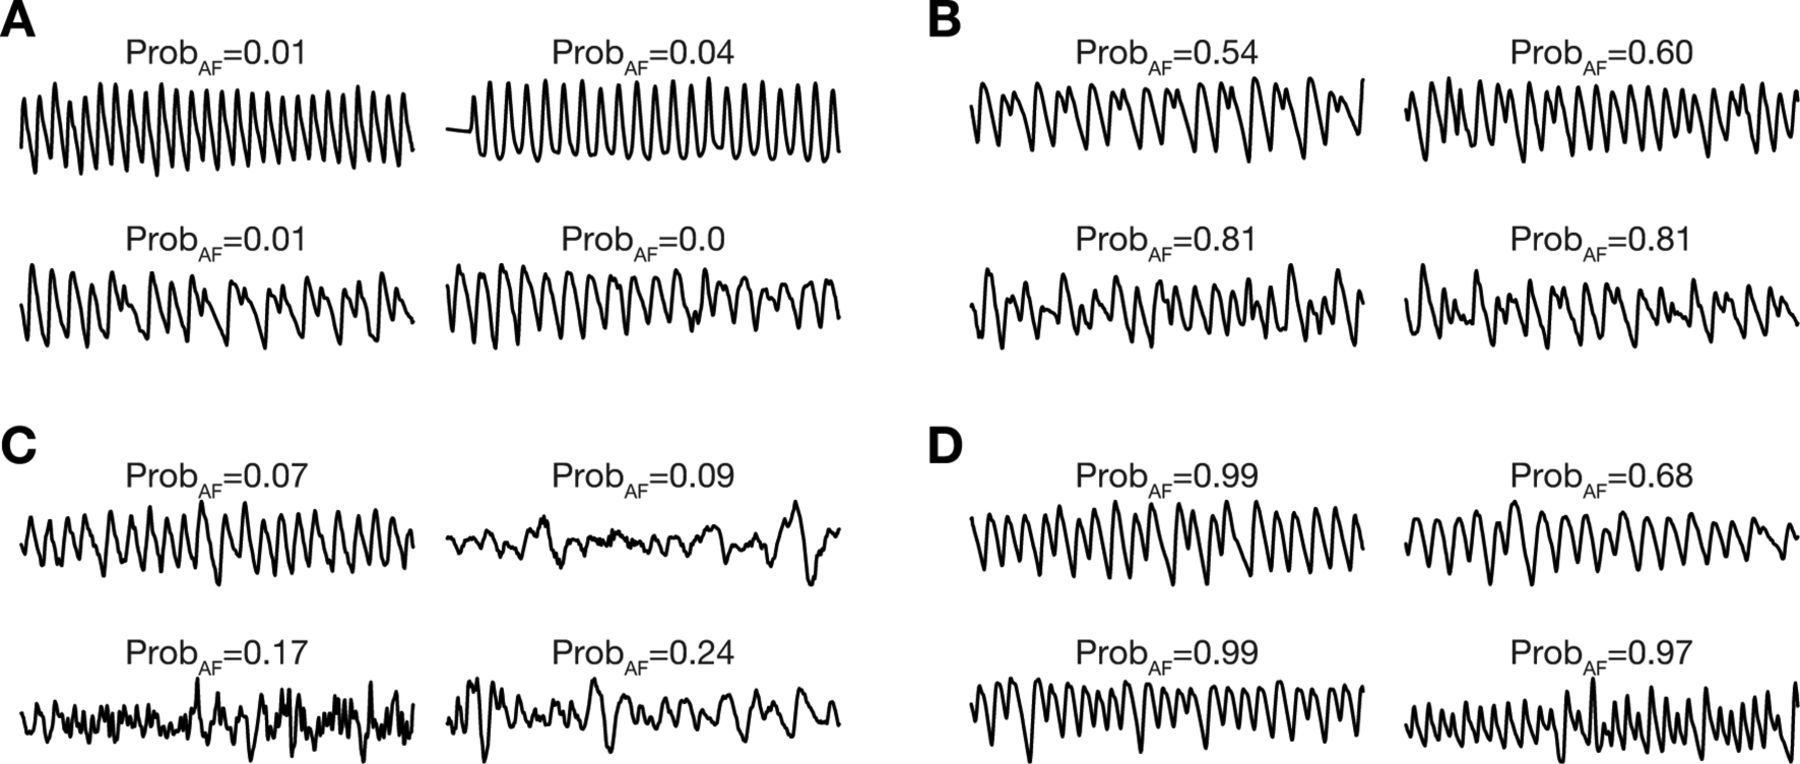 Diagnostic assessment of a deep learning system for detecting atrial